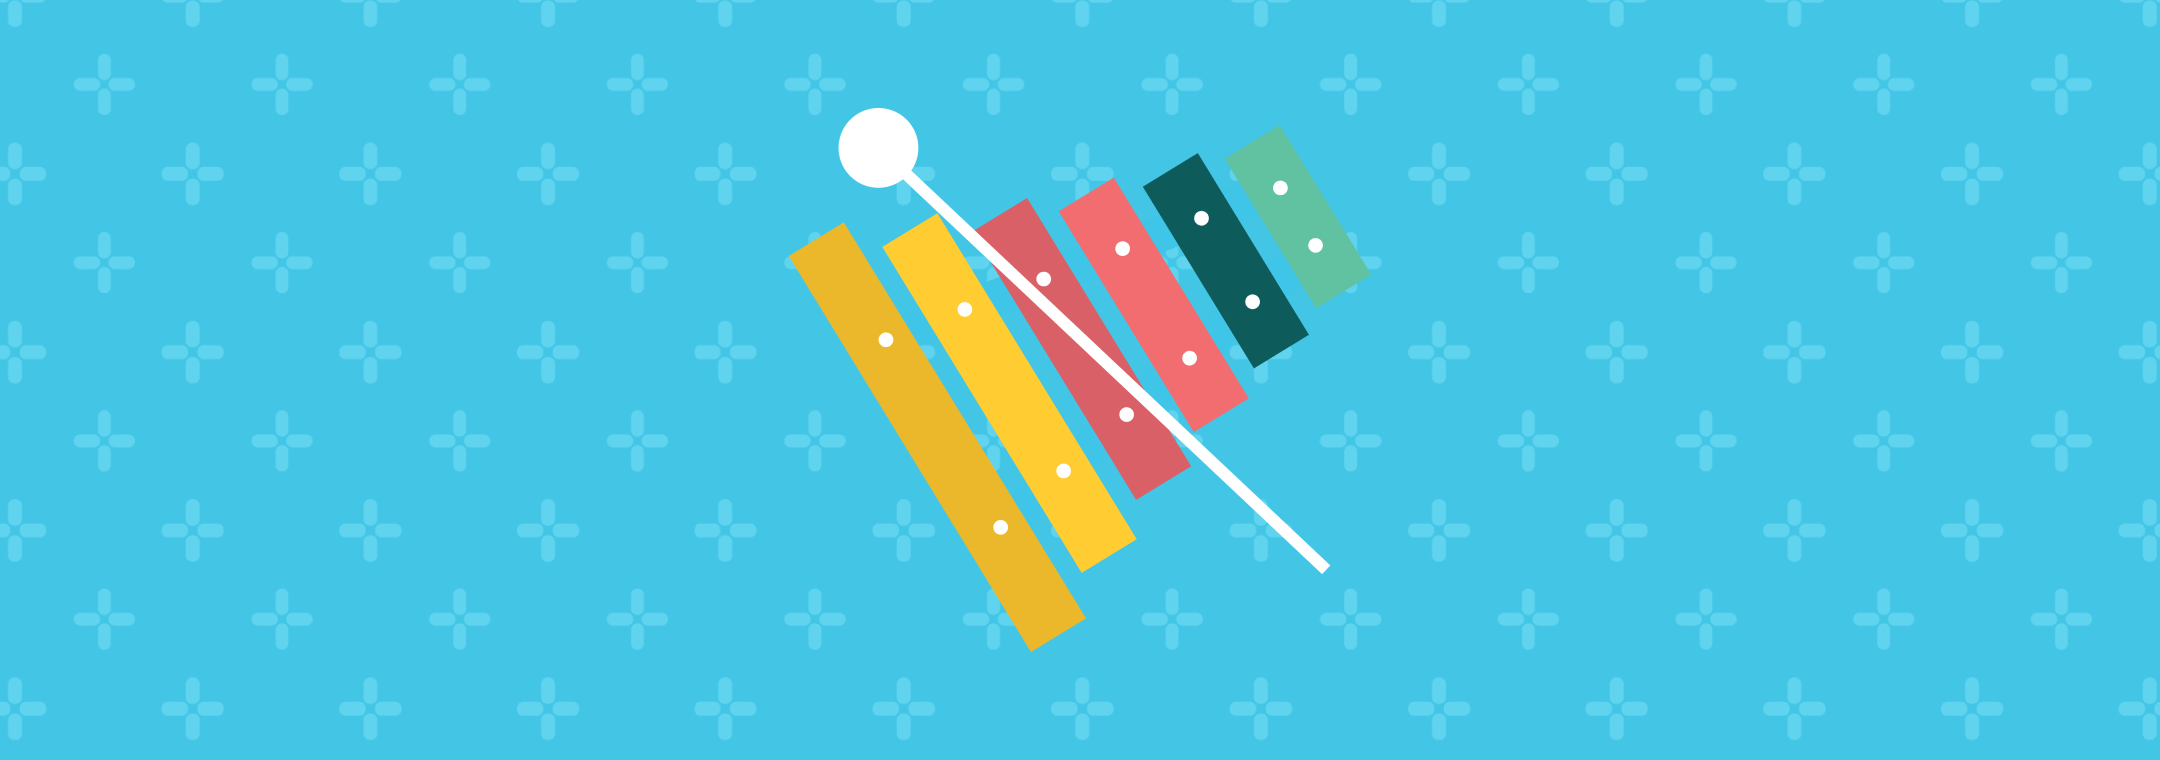 colorful xylophone instrument